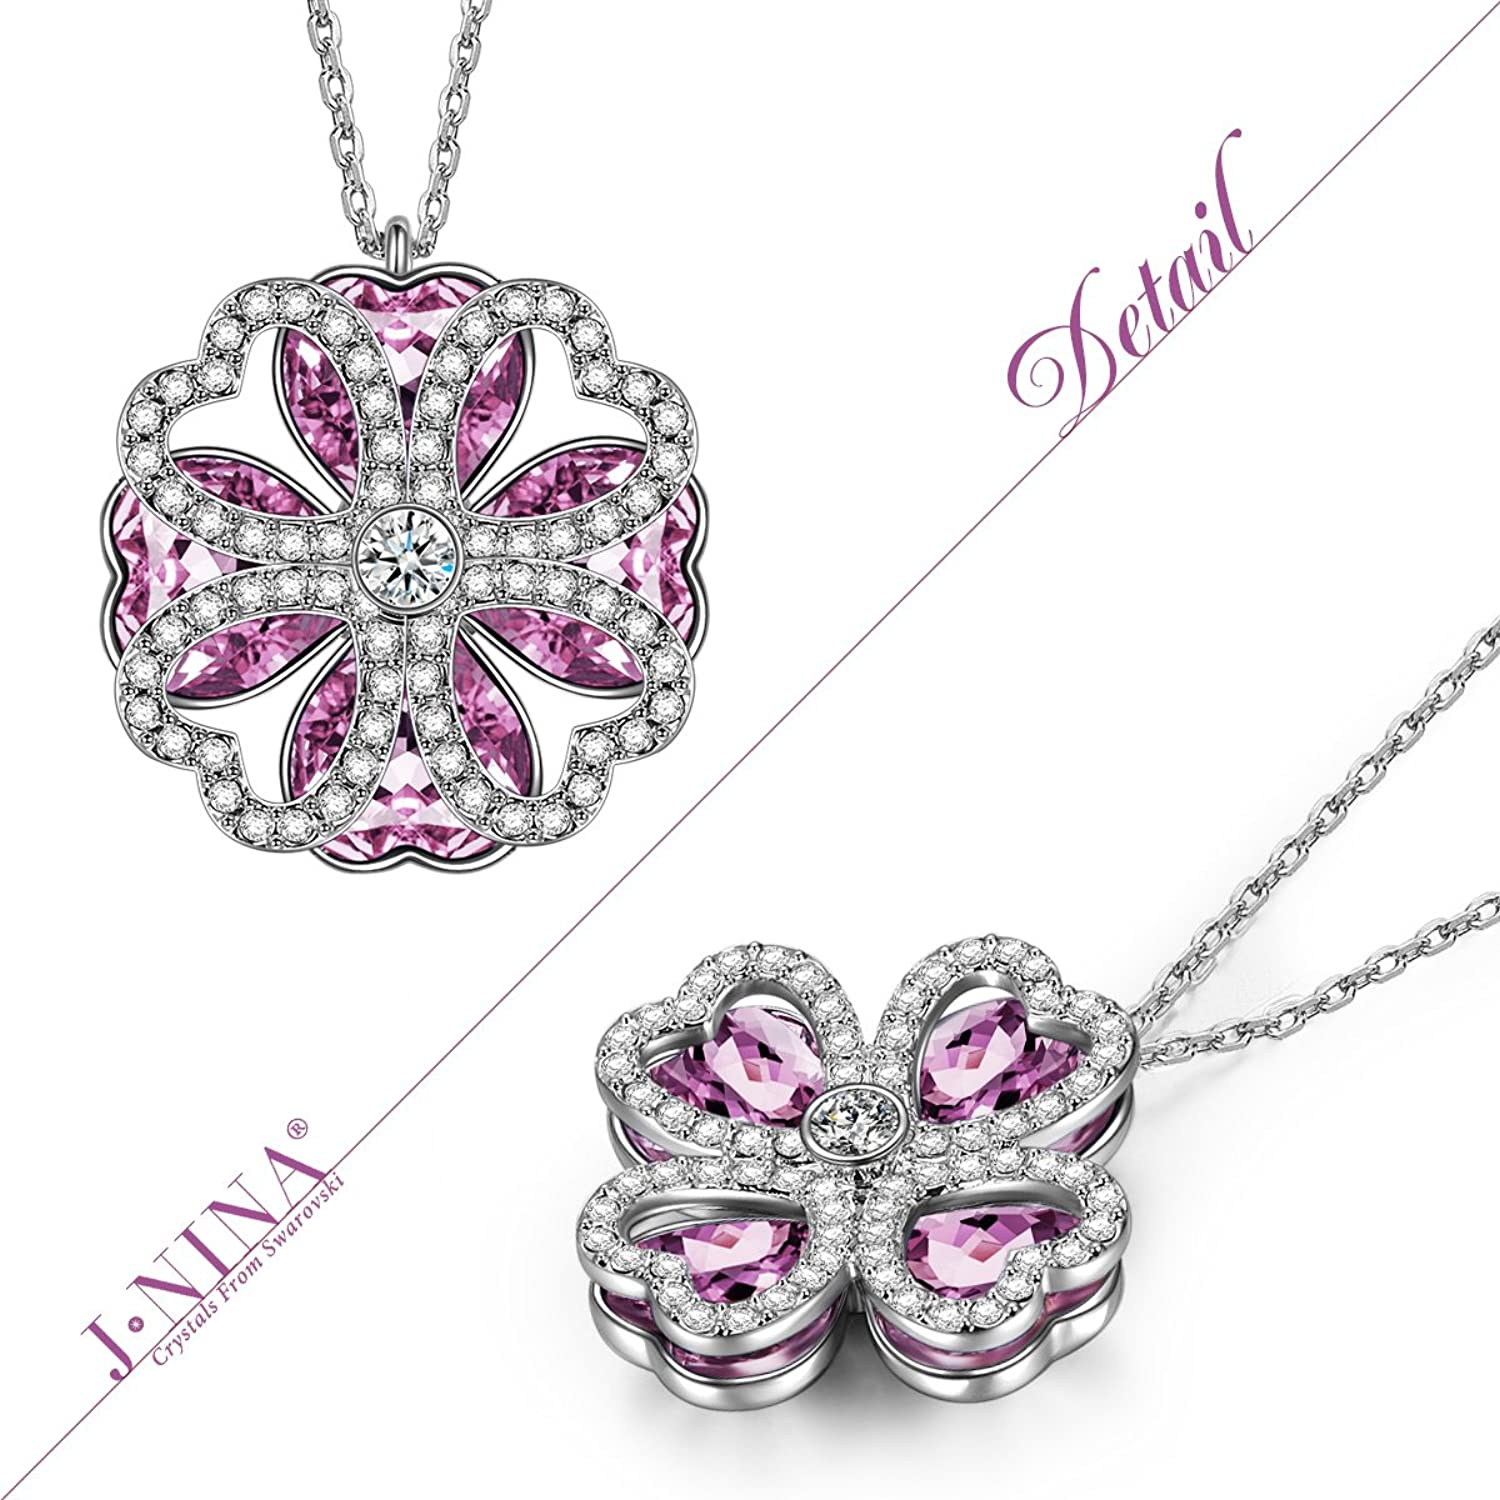 """Amazon.com: J.NINA """"Lucky Meeting"""" Made with Swarovski Crystals, Clover  Hollow Rotatable Pendant Heart Women Necklace, Ideal Gift for her: Jewelry"""